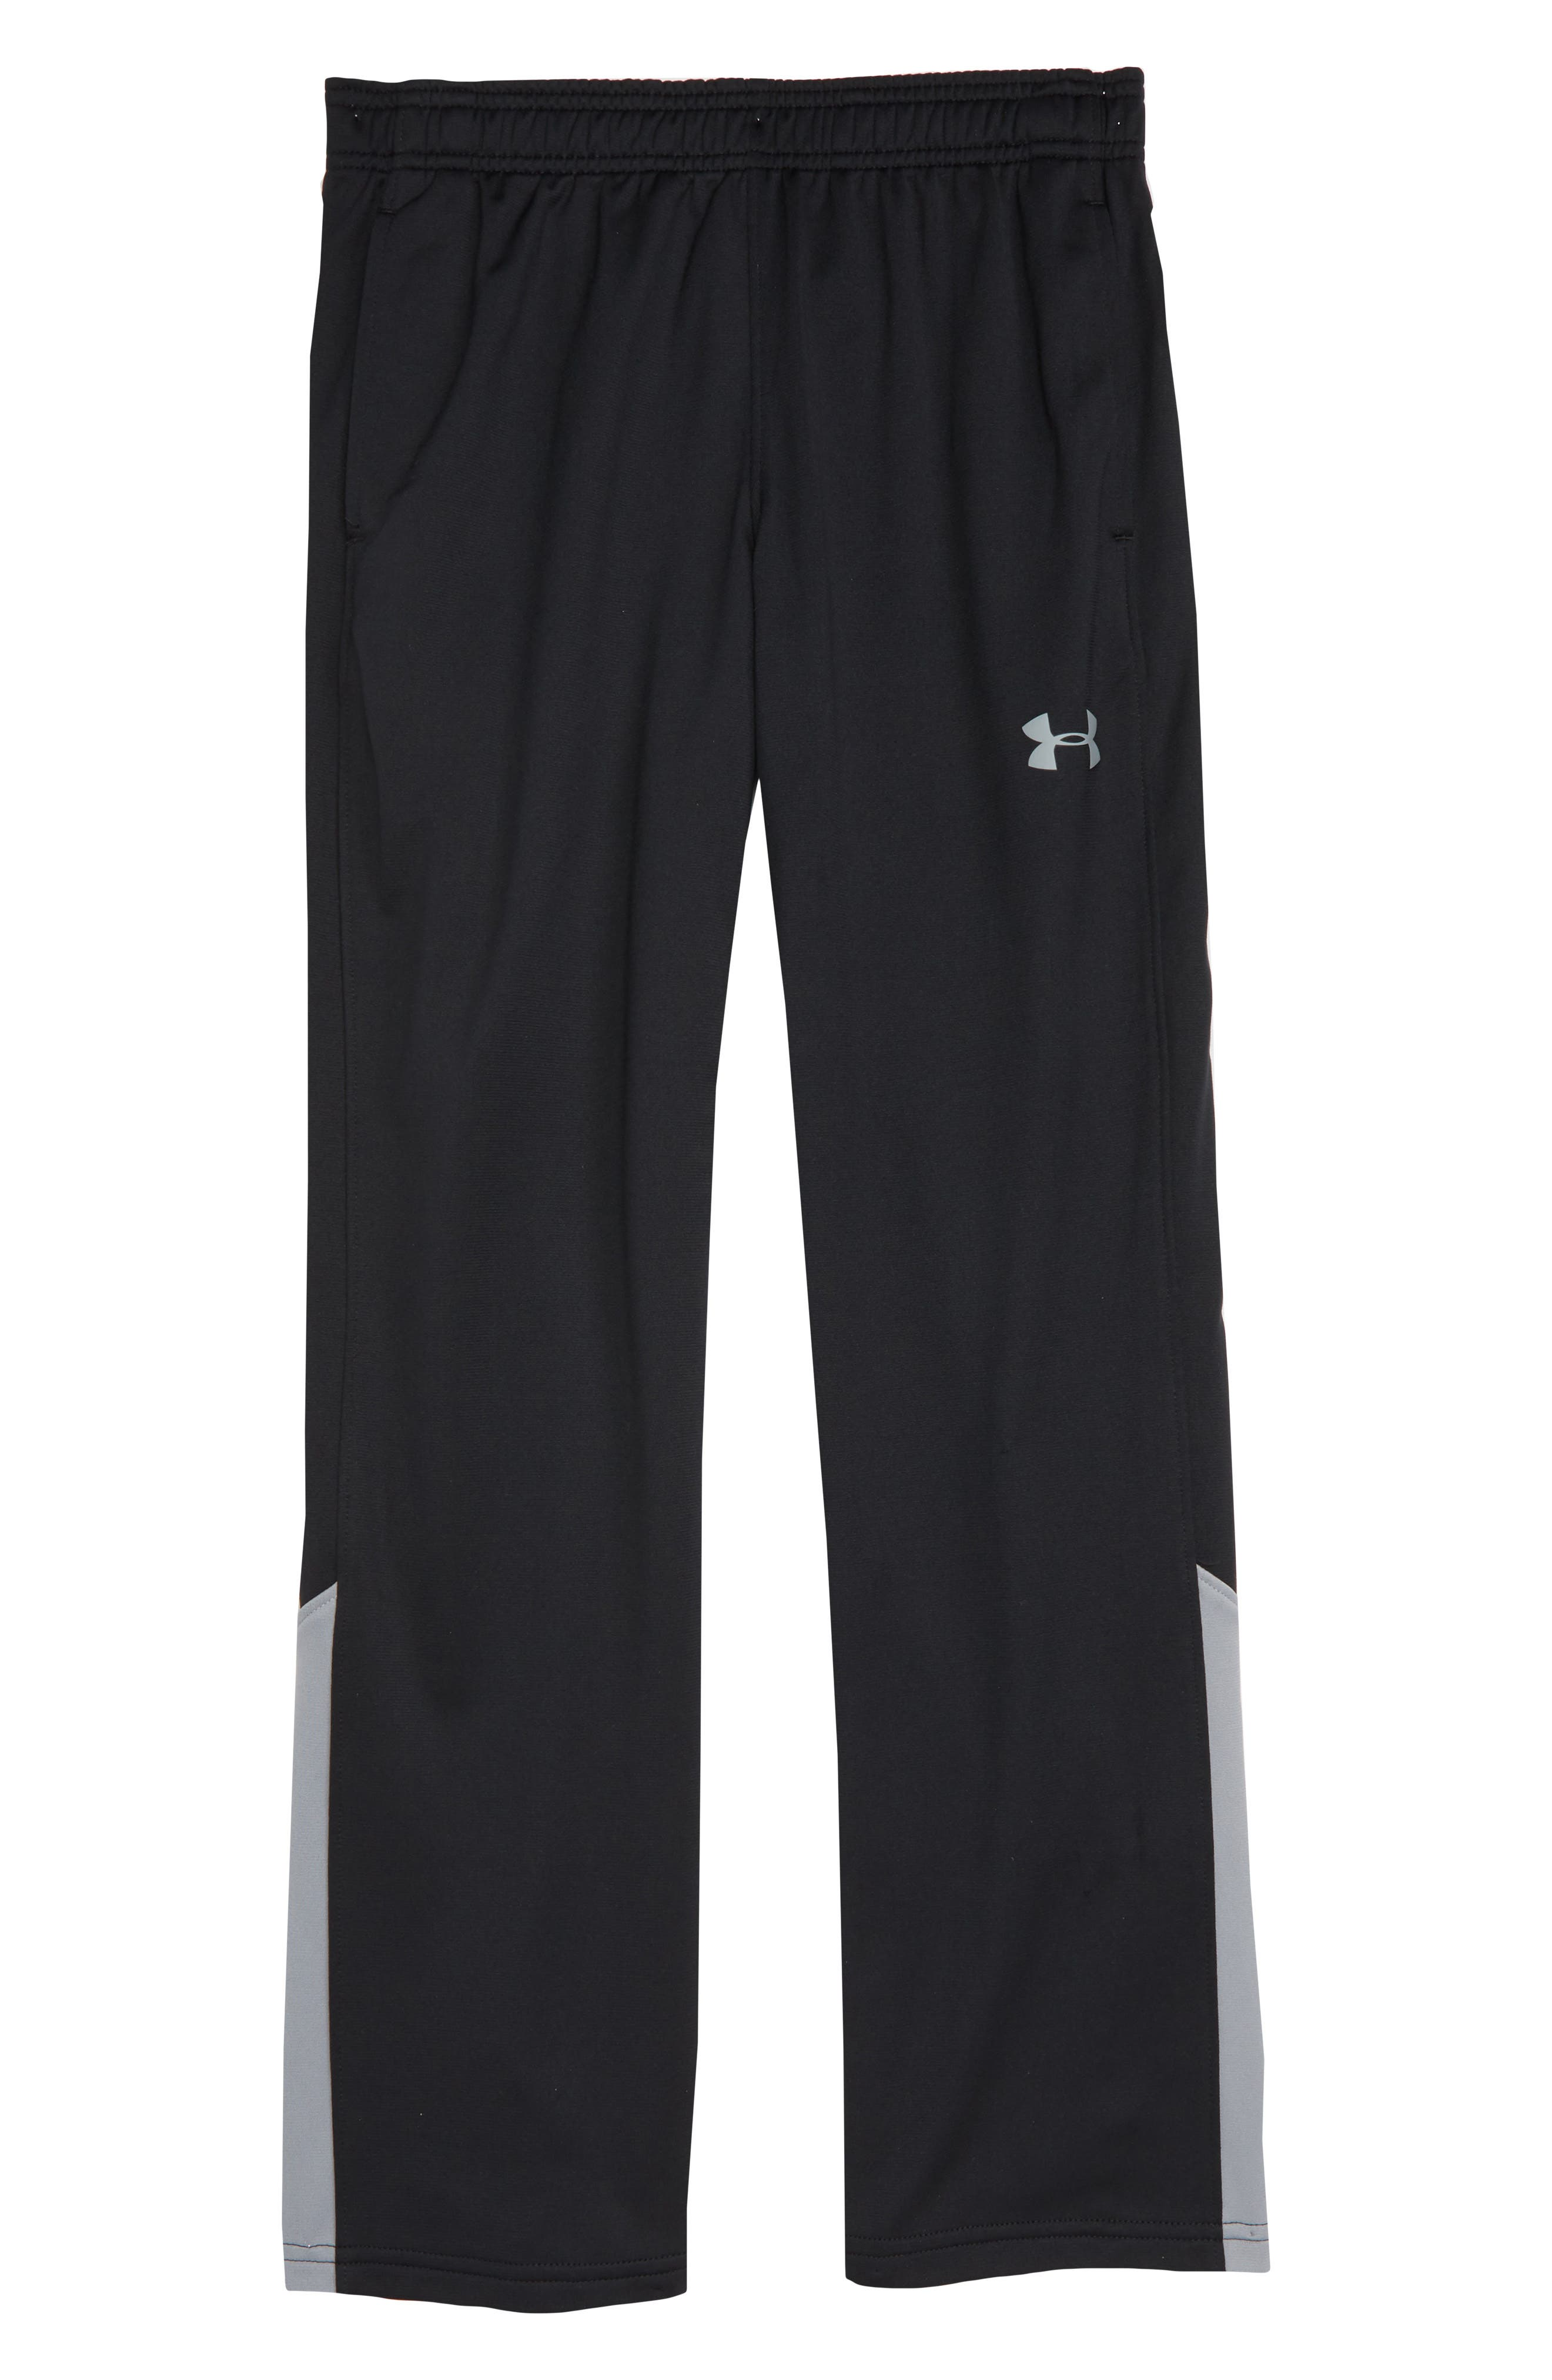 Brawler 2.0 Sweatpants,                             Main thumbnail 1, color,                             BLACK/ STEEL